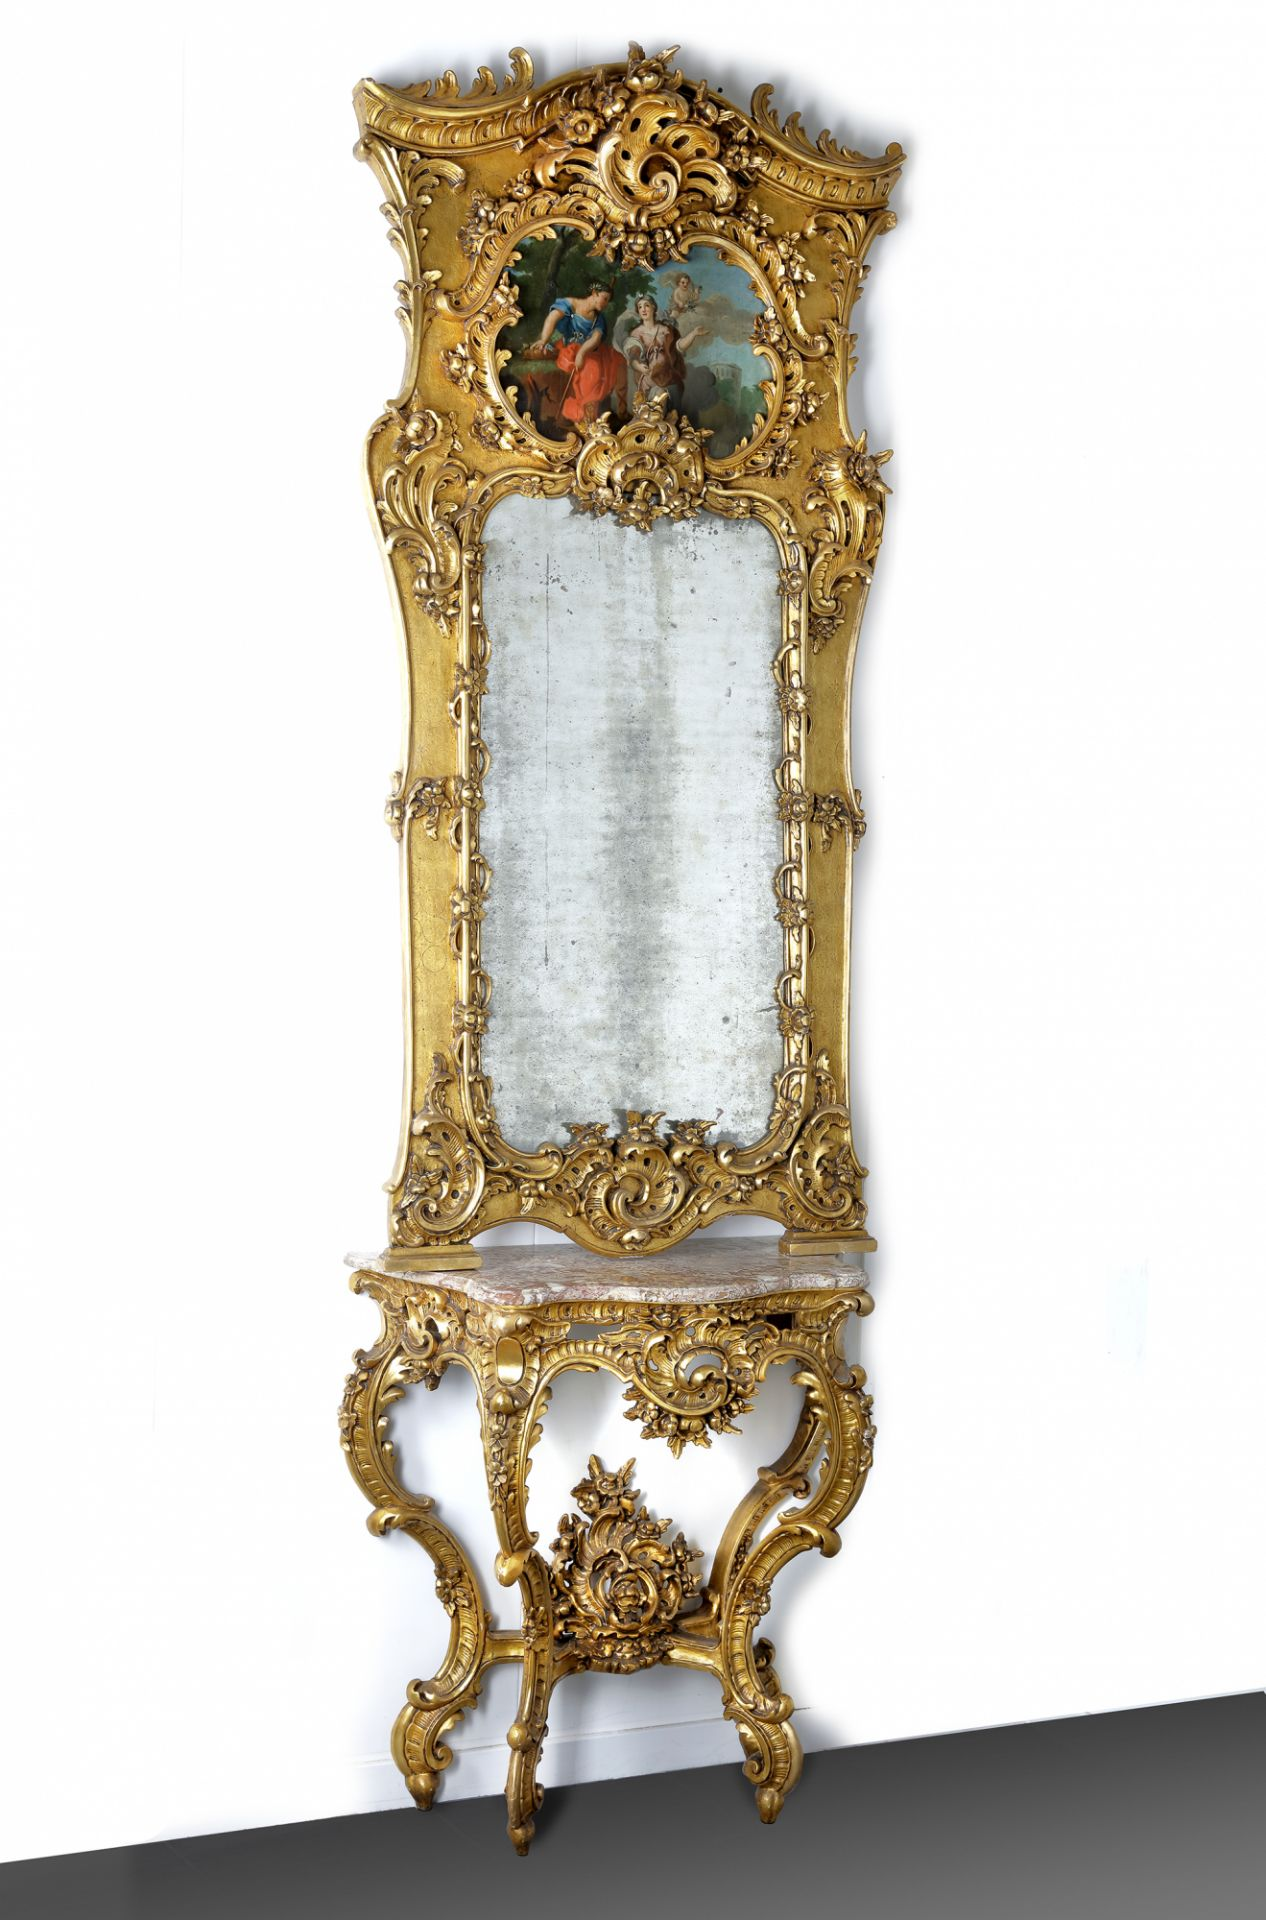 A FRENCH TRUMEAU MIRROR AND CONSOLE, LATE 19TH CENTURY